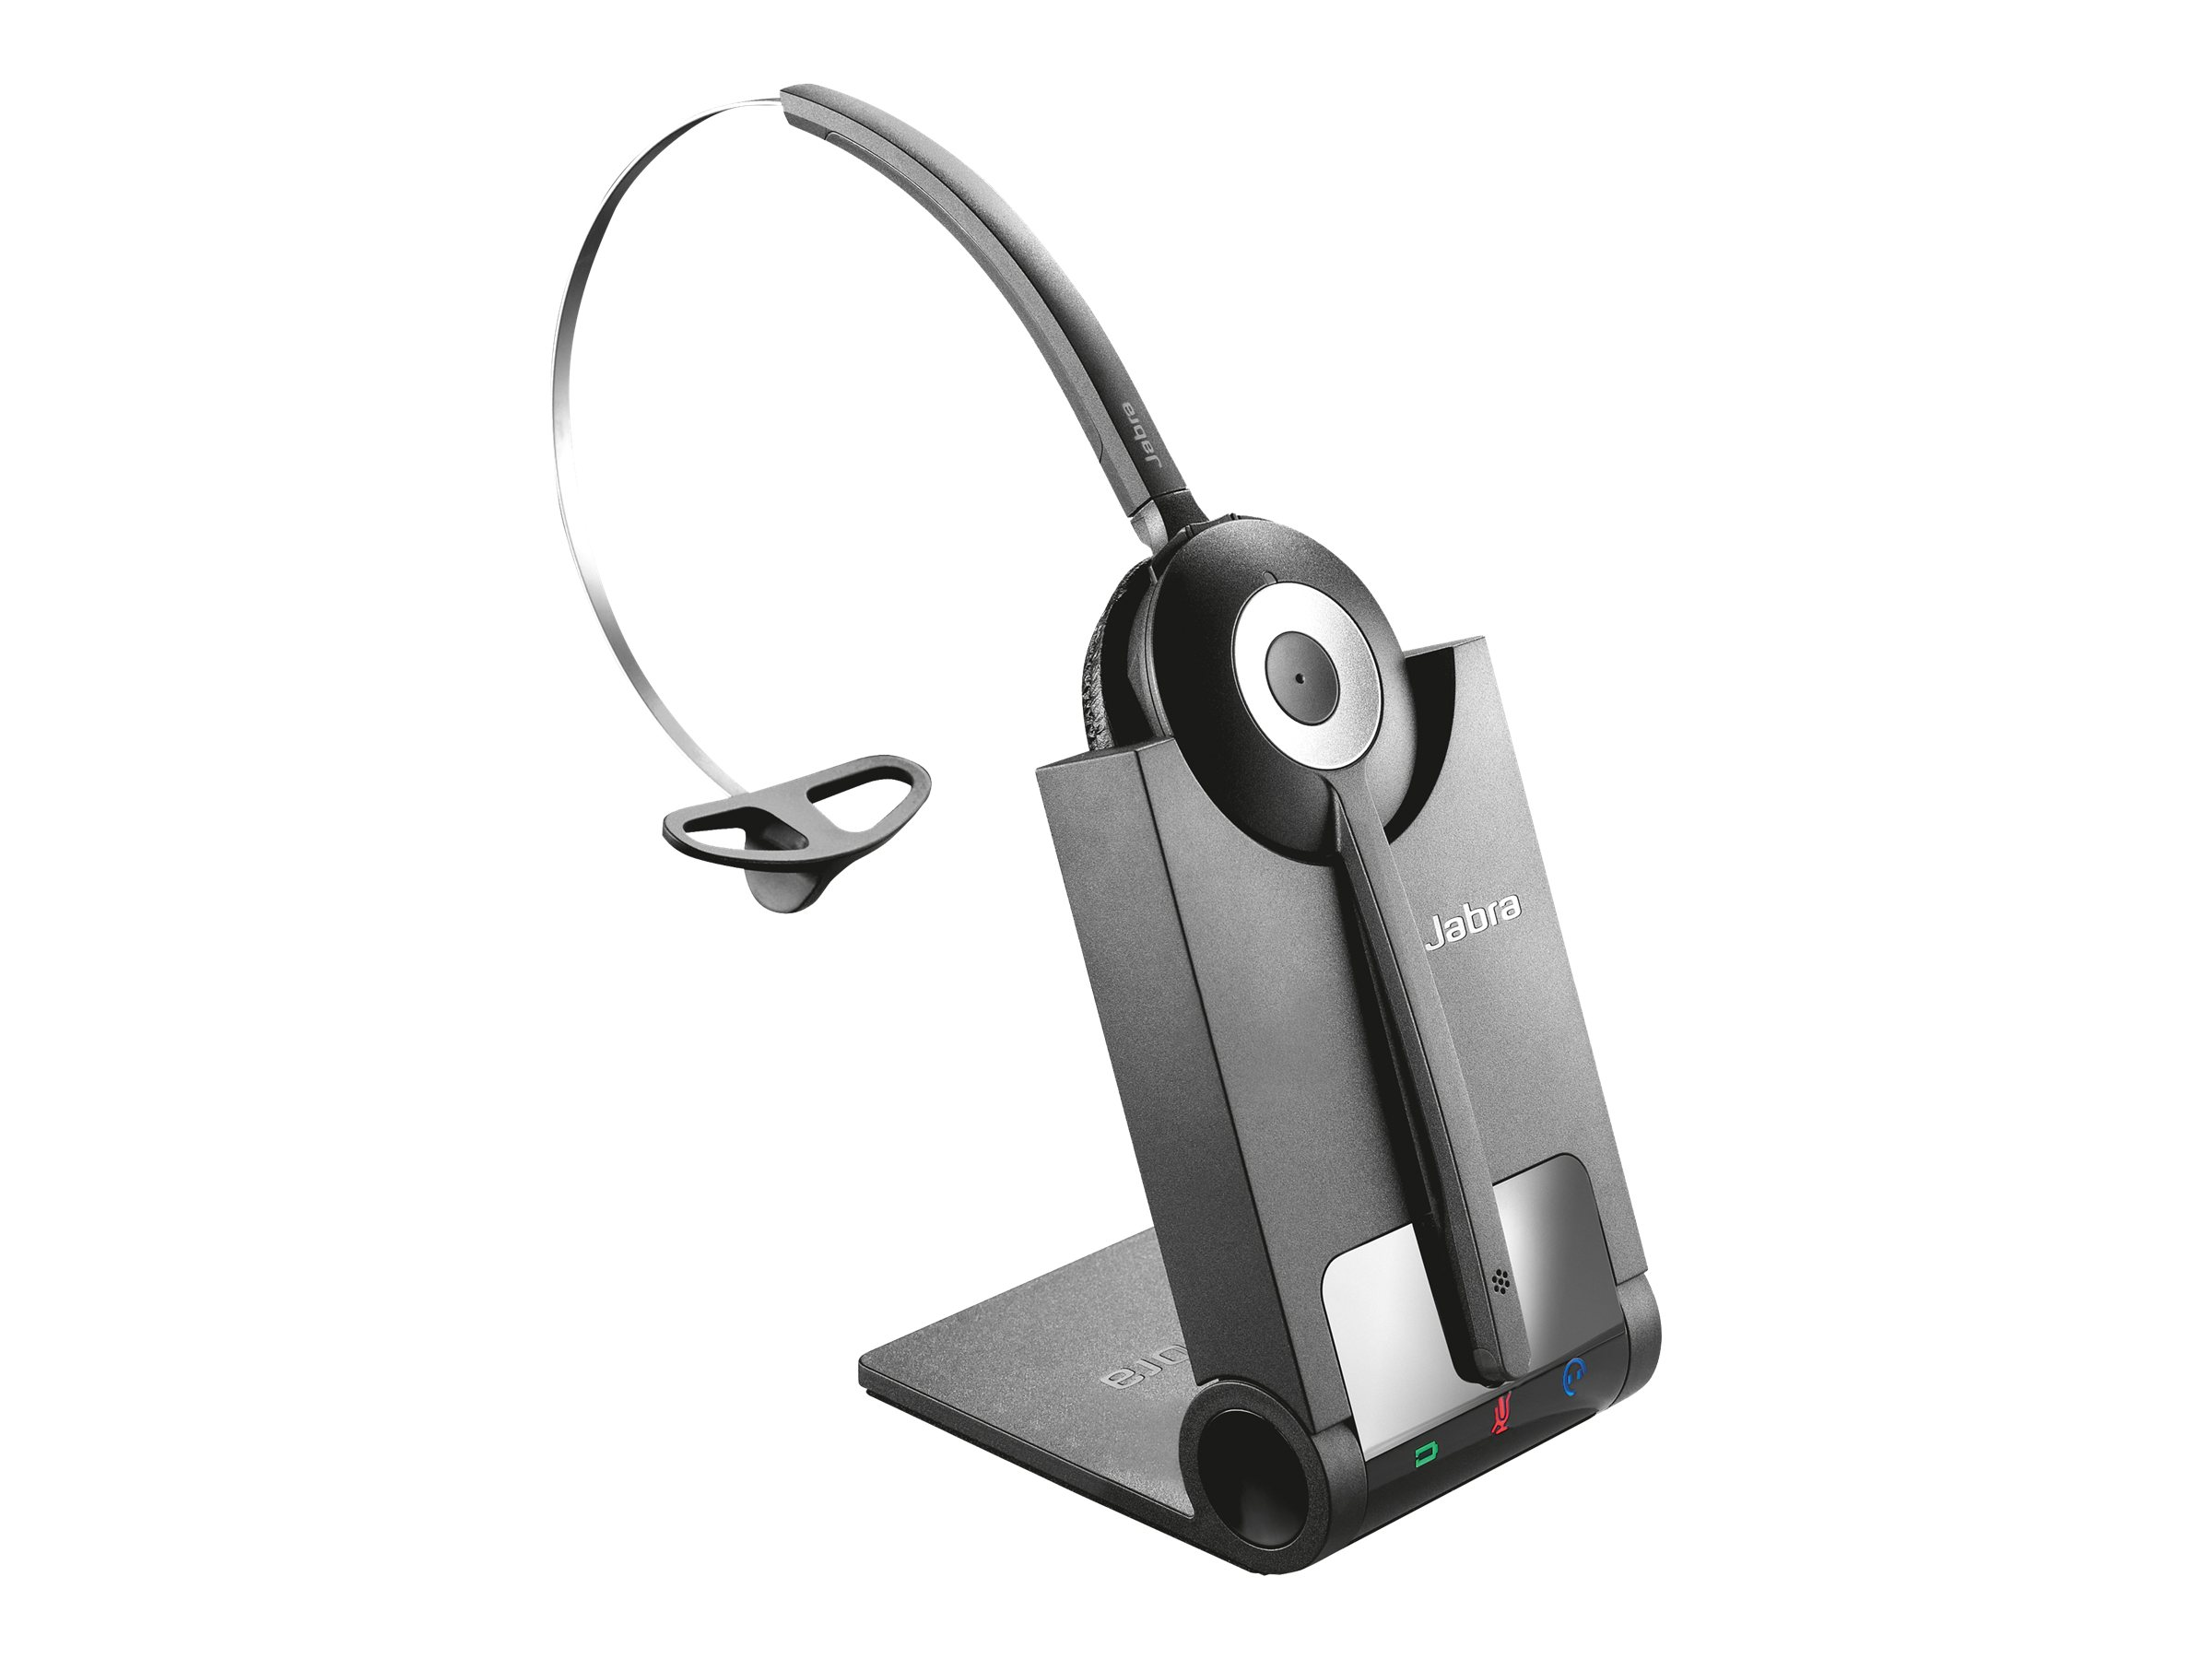 AGFEO Headset 920 - Headset - On-Ear - drahtlos - DECT - für ST 31, 40, 40 IP, 42, 42AB, 45